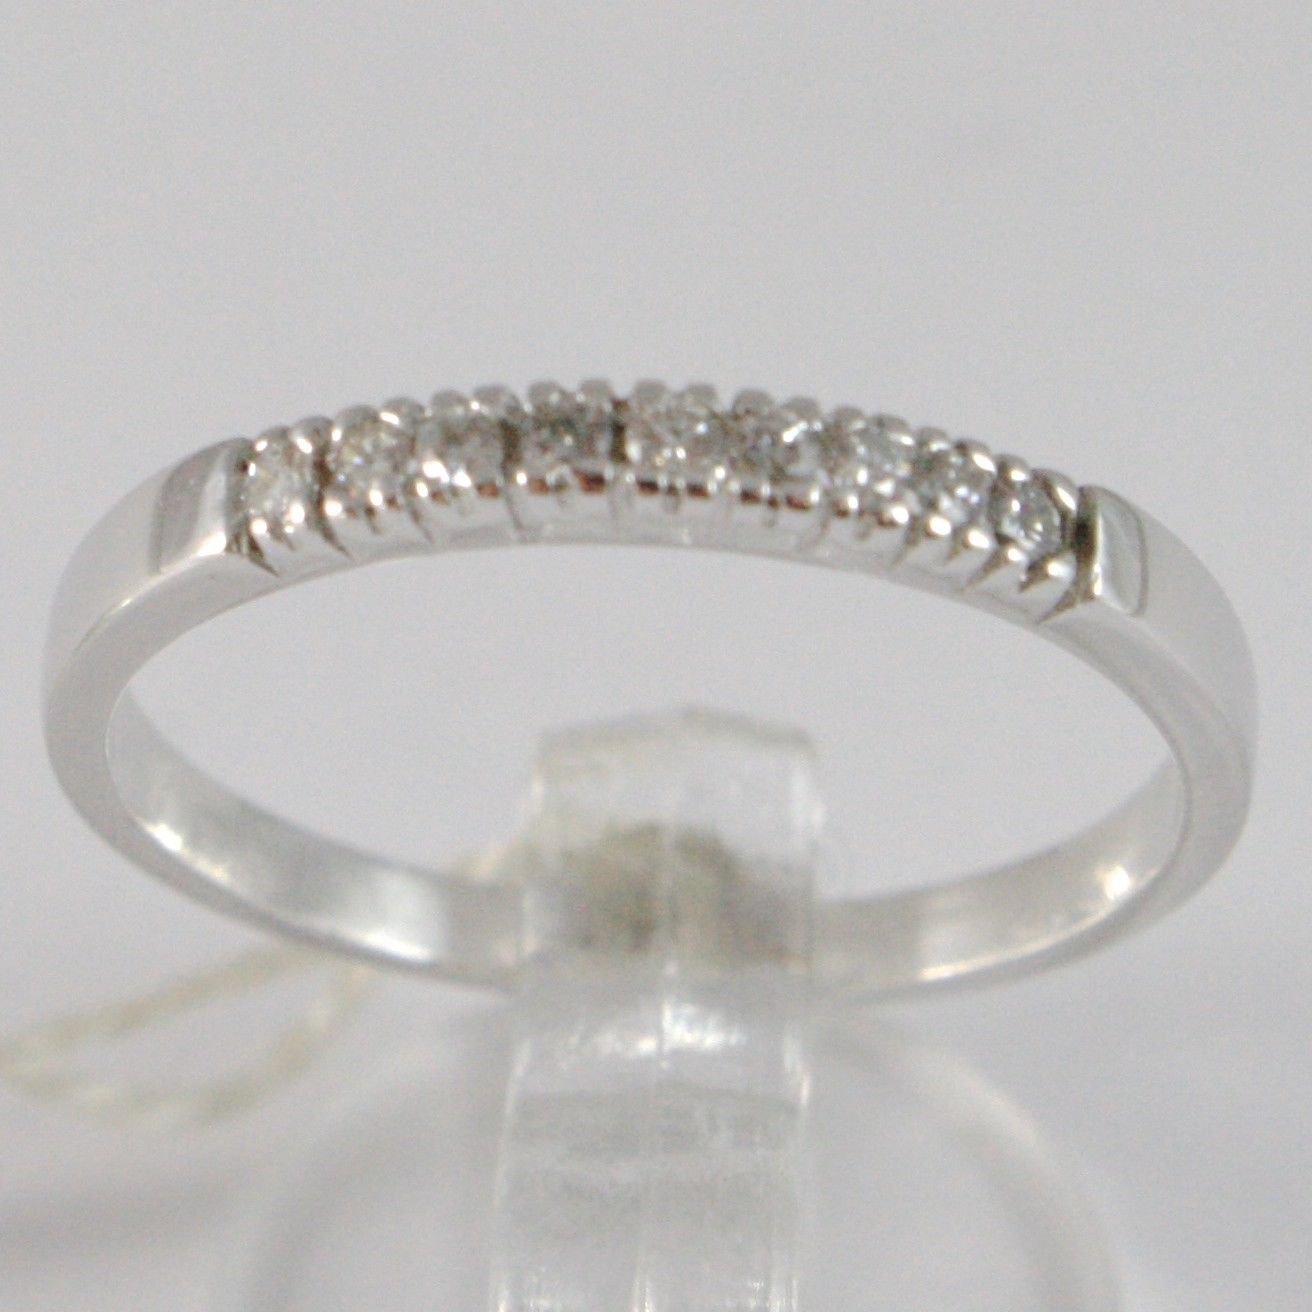 BAGUE EN OR BLANC 750 18K, VERETTA 9 DIAMANTS CARAT EN TOUT 0.06, TIGE CARRÉ